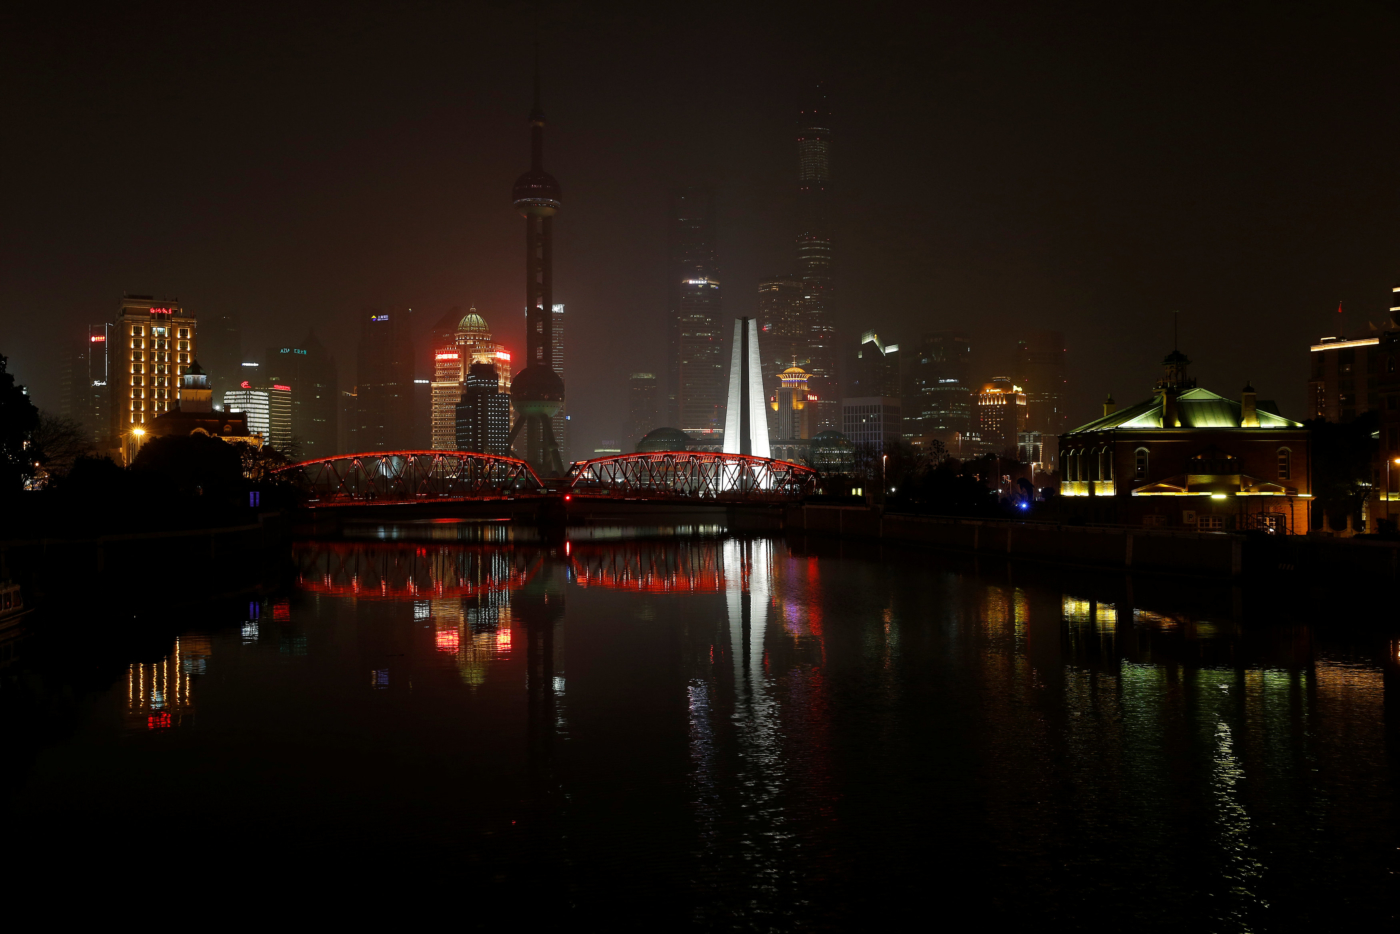 The Bund on the banks of the Huangpu River is pictured during Earth Hour in Shanghai, China March 25, 2017. REUTERS/Aly Song